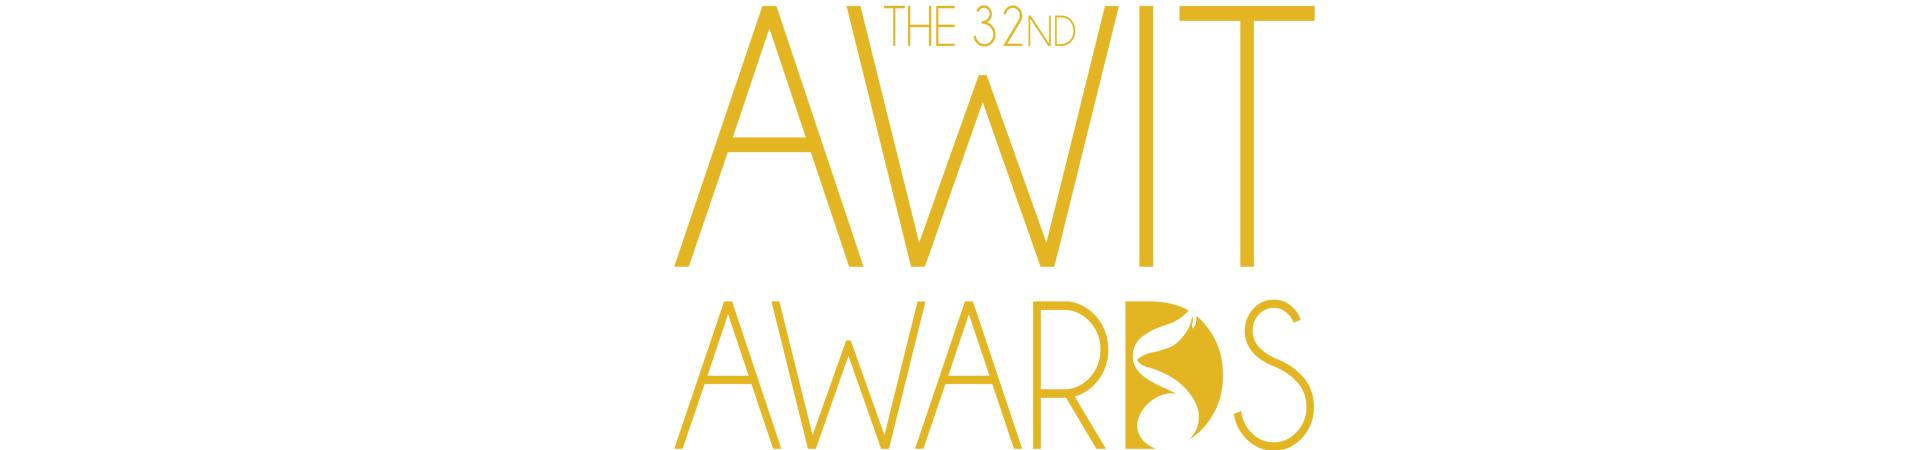 32nd Awit Awards Favorite Album of the Year